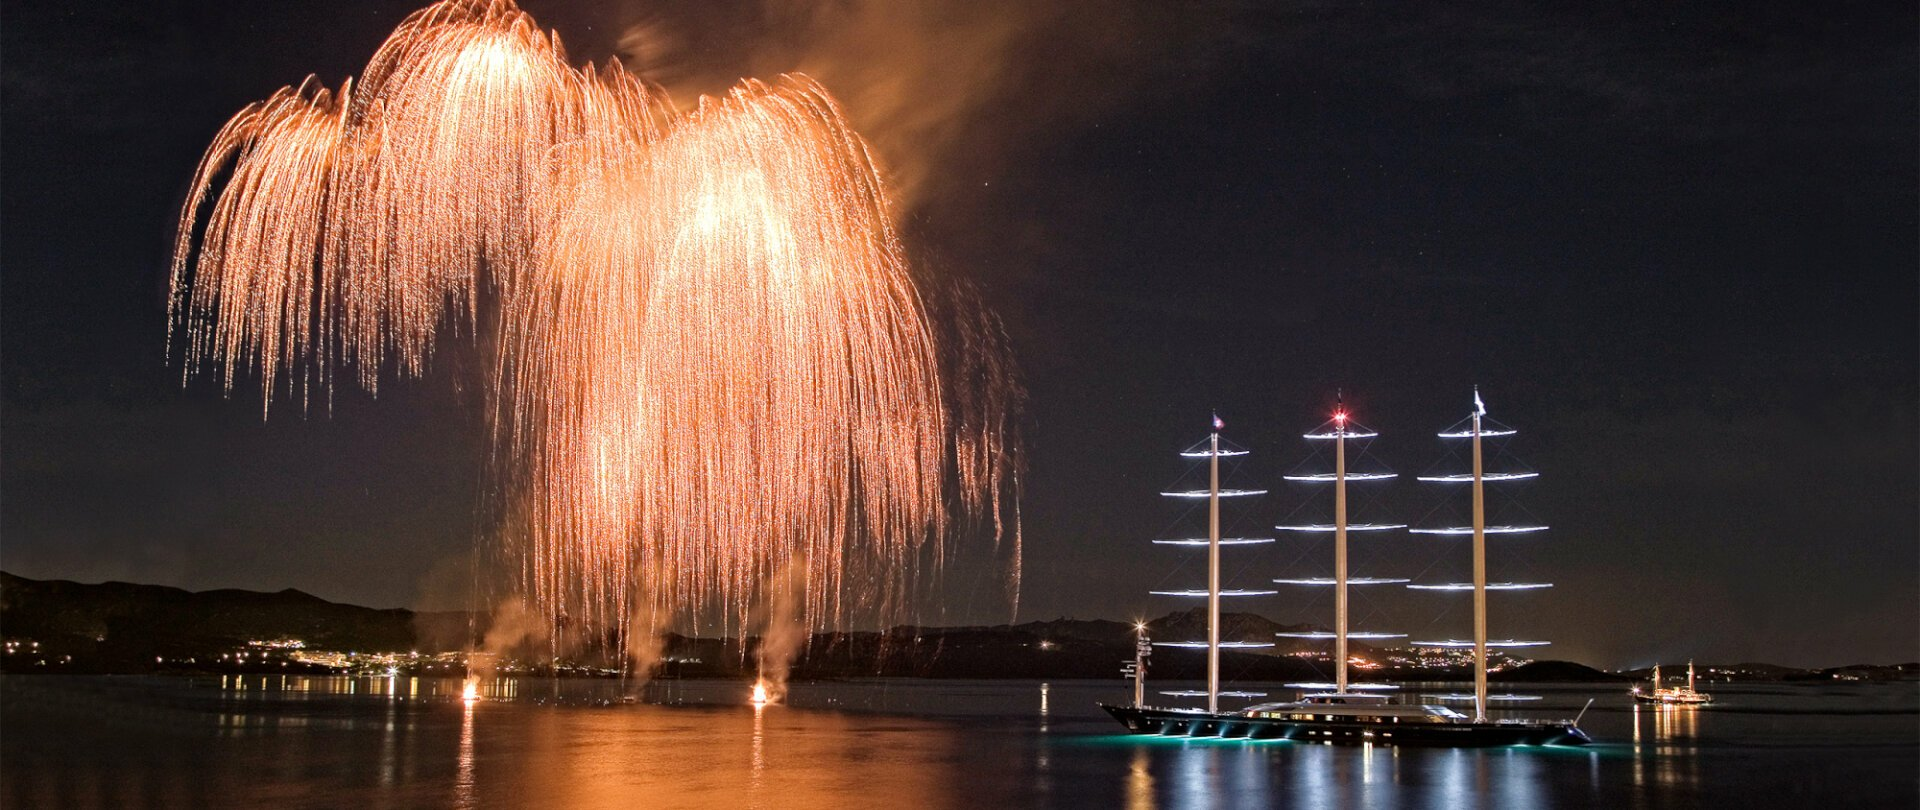 Fireworks in Sardinia port with Maltese Falcon